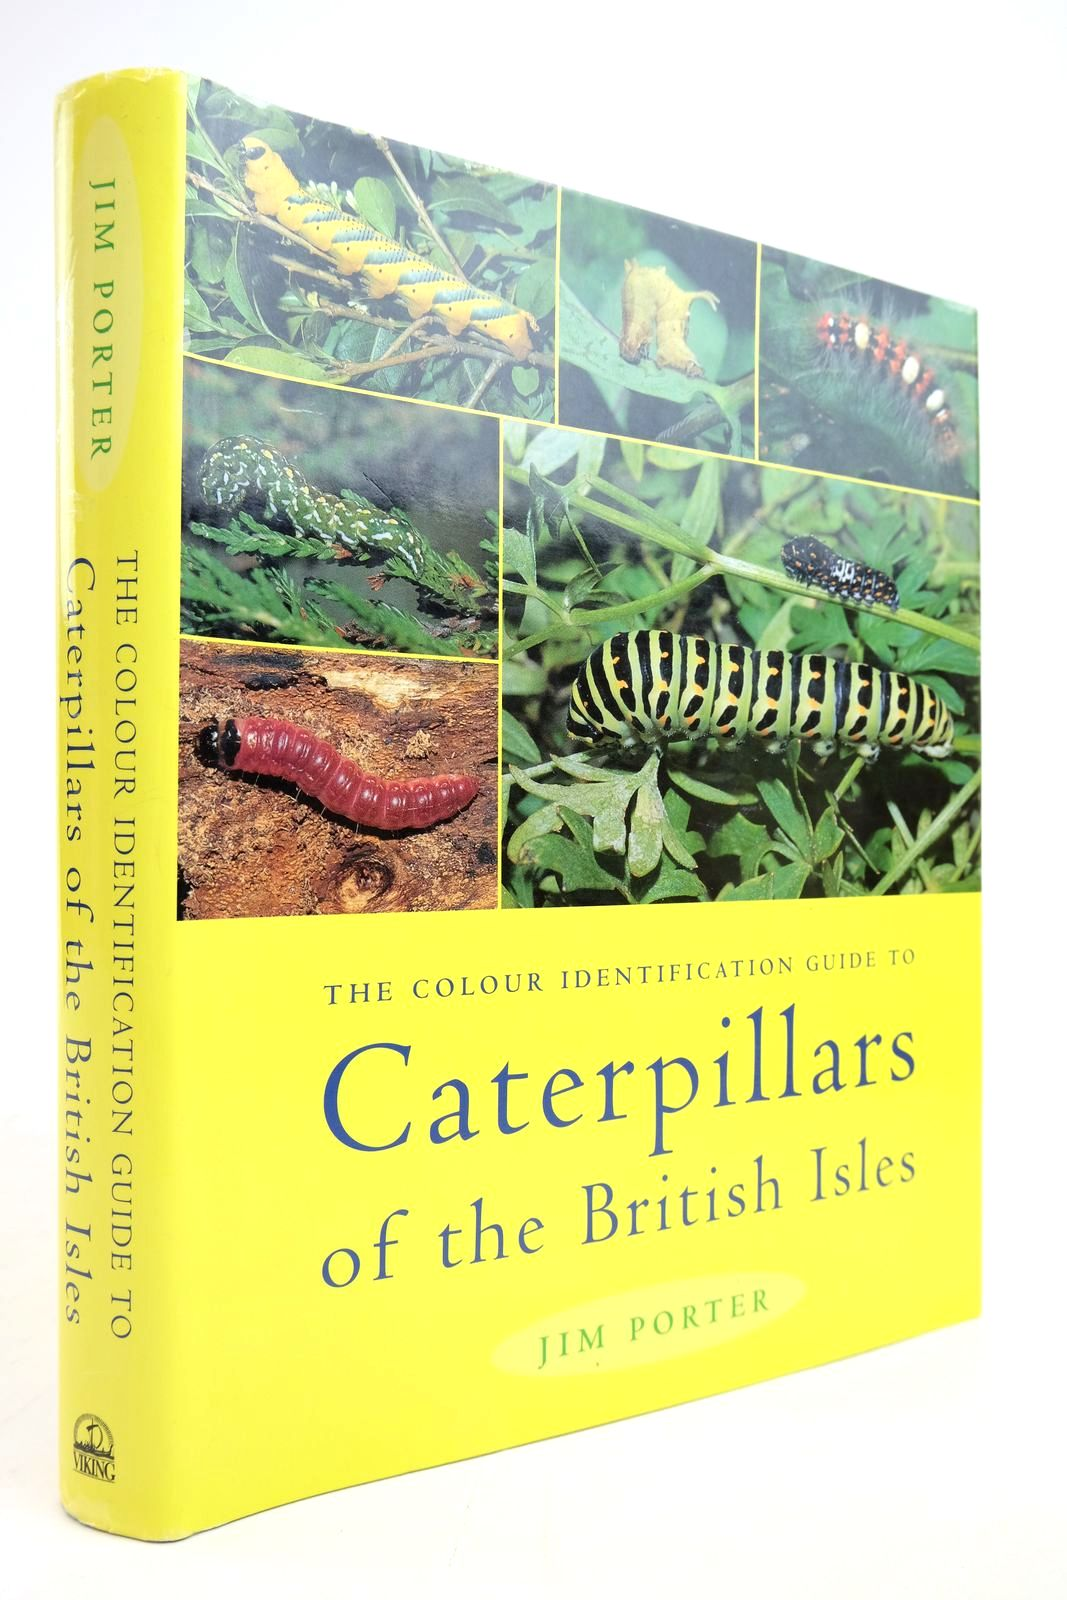 Photo of THE COLOUR IDENTIFICATION GUIDE TO CATERPILLARS OF THE BRITISH ISLES- Stock Number: 2135356